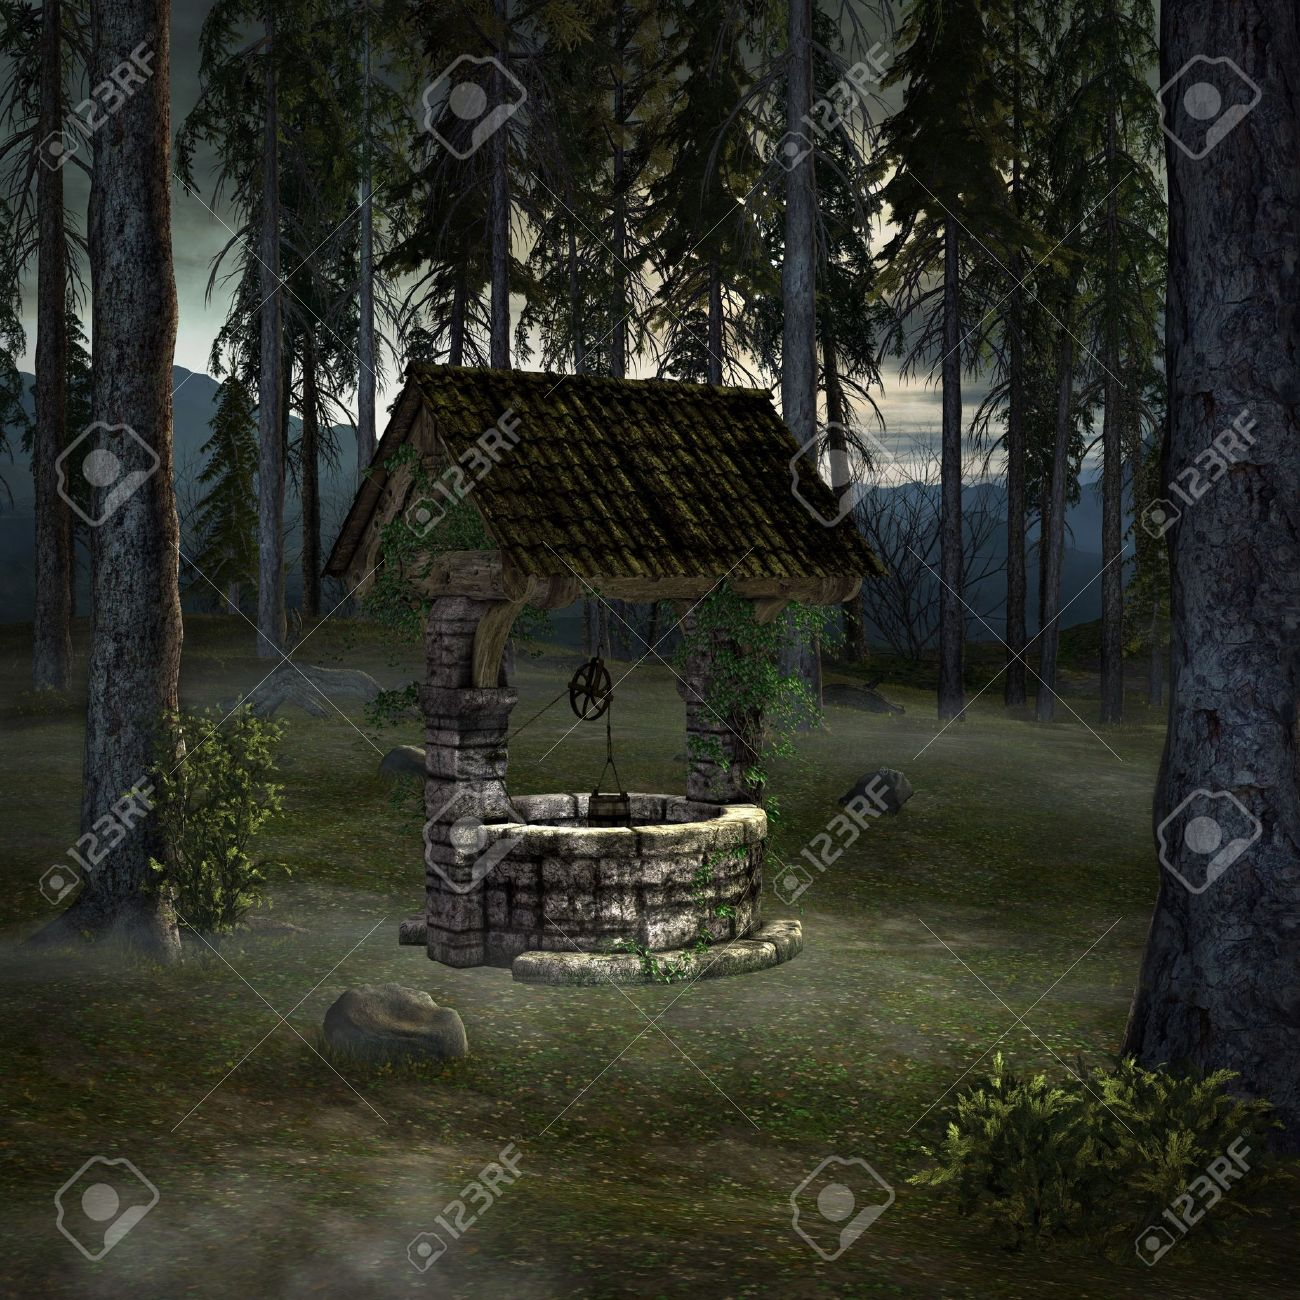 Old well on a clearing illustration Stock Photo - 11367267